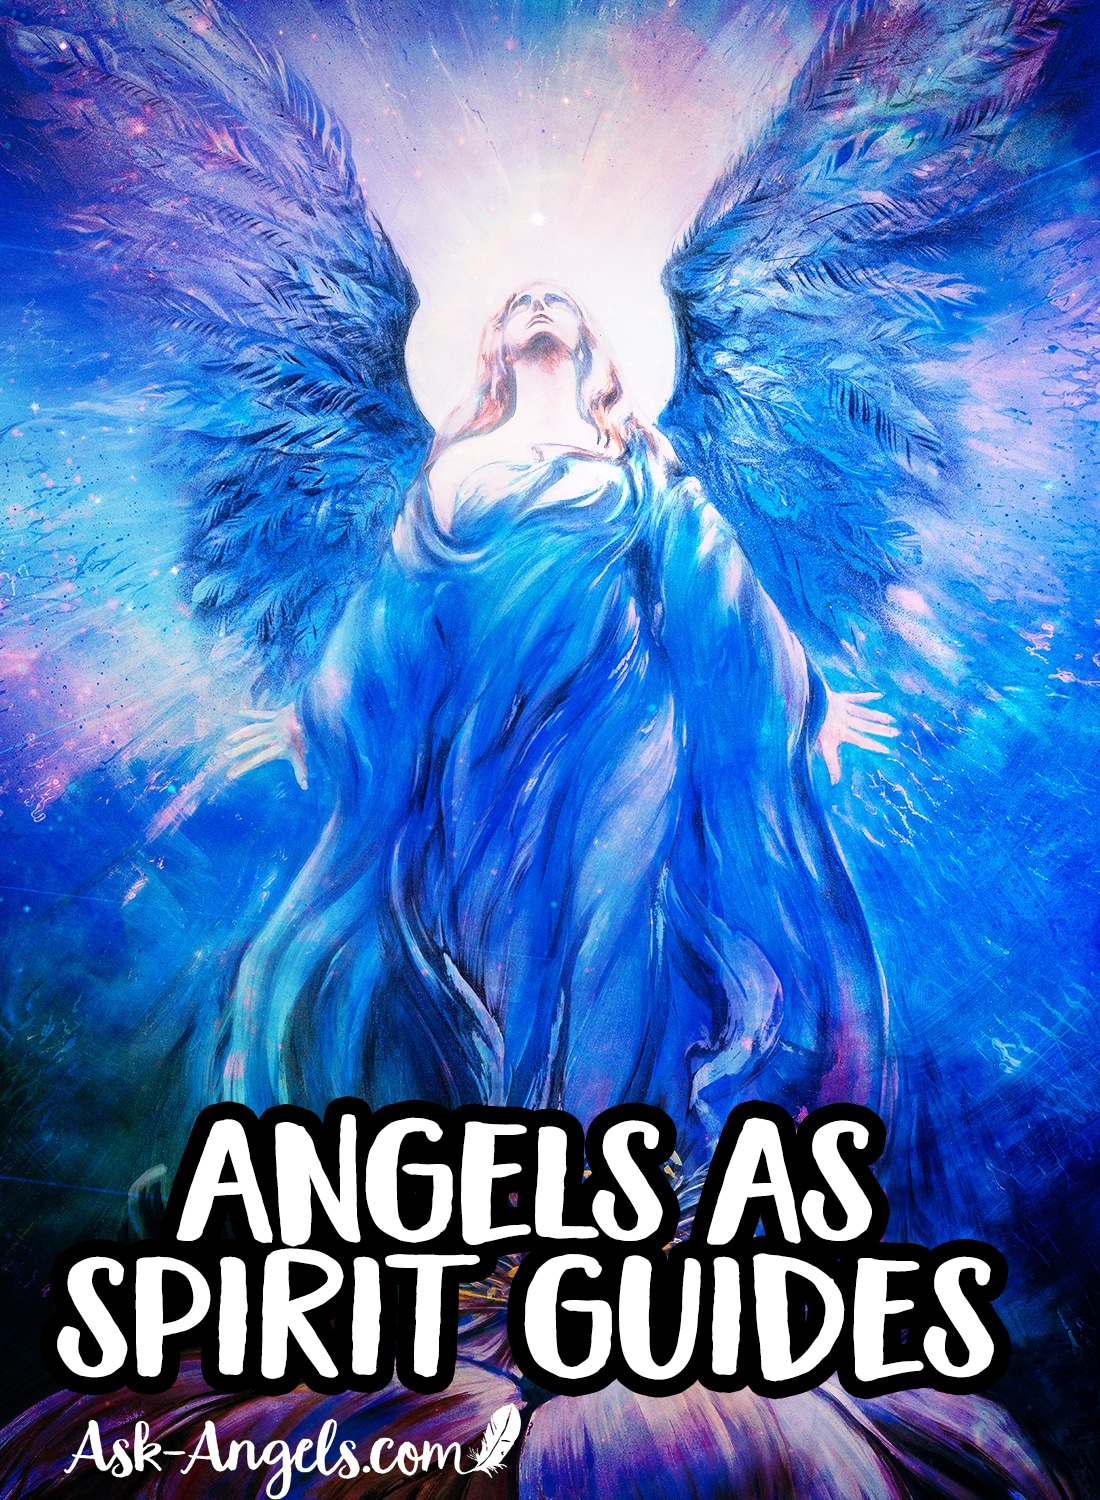 Angels as Spirit Guides